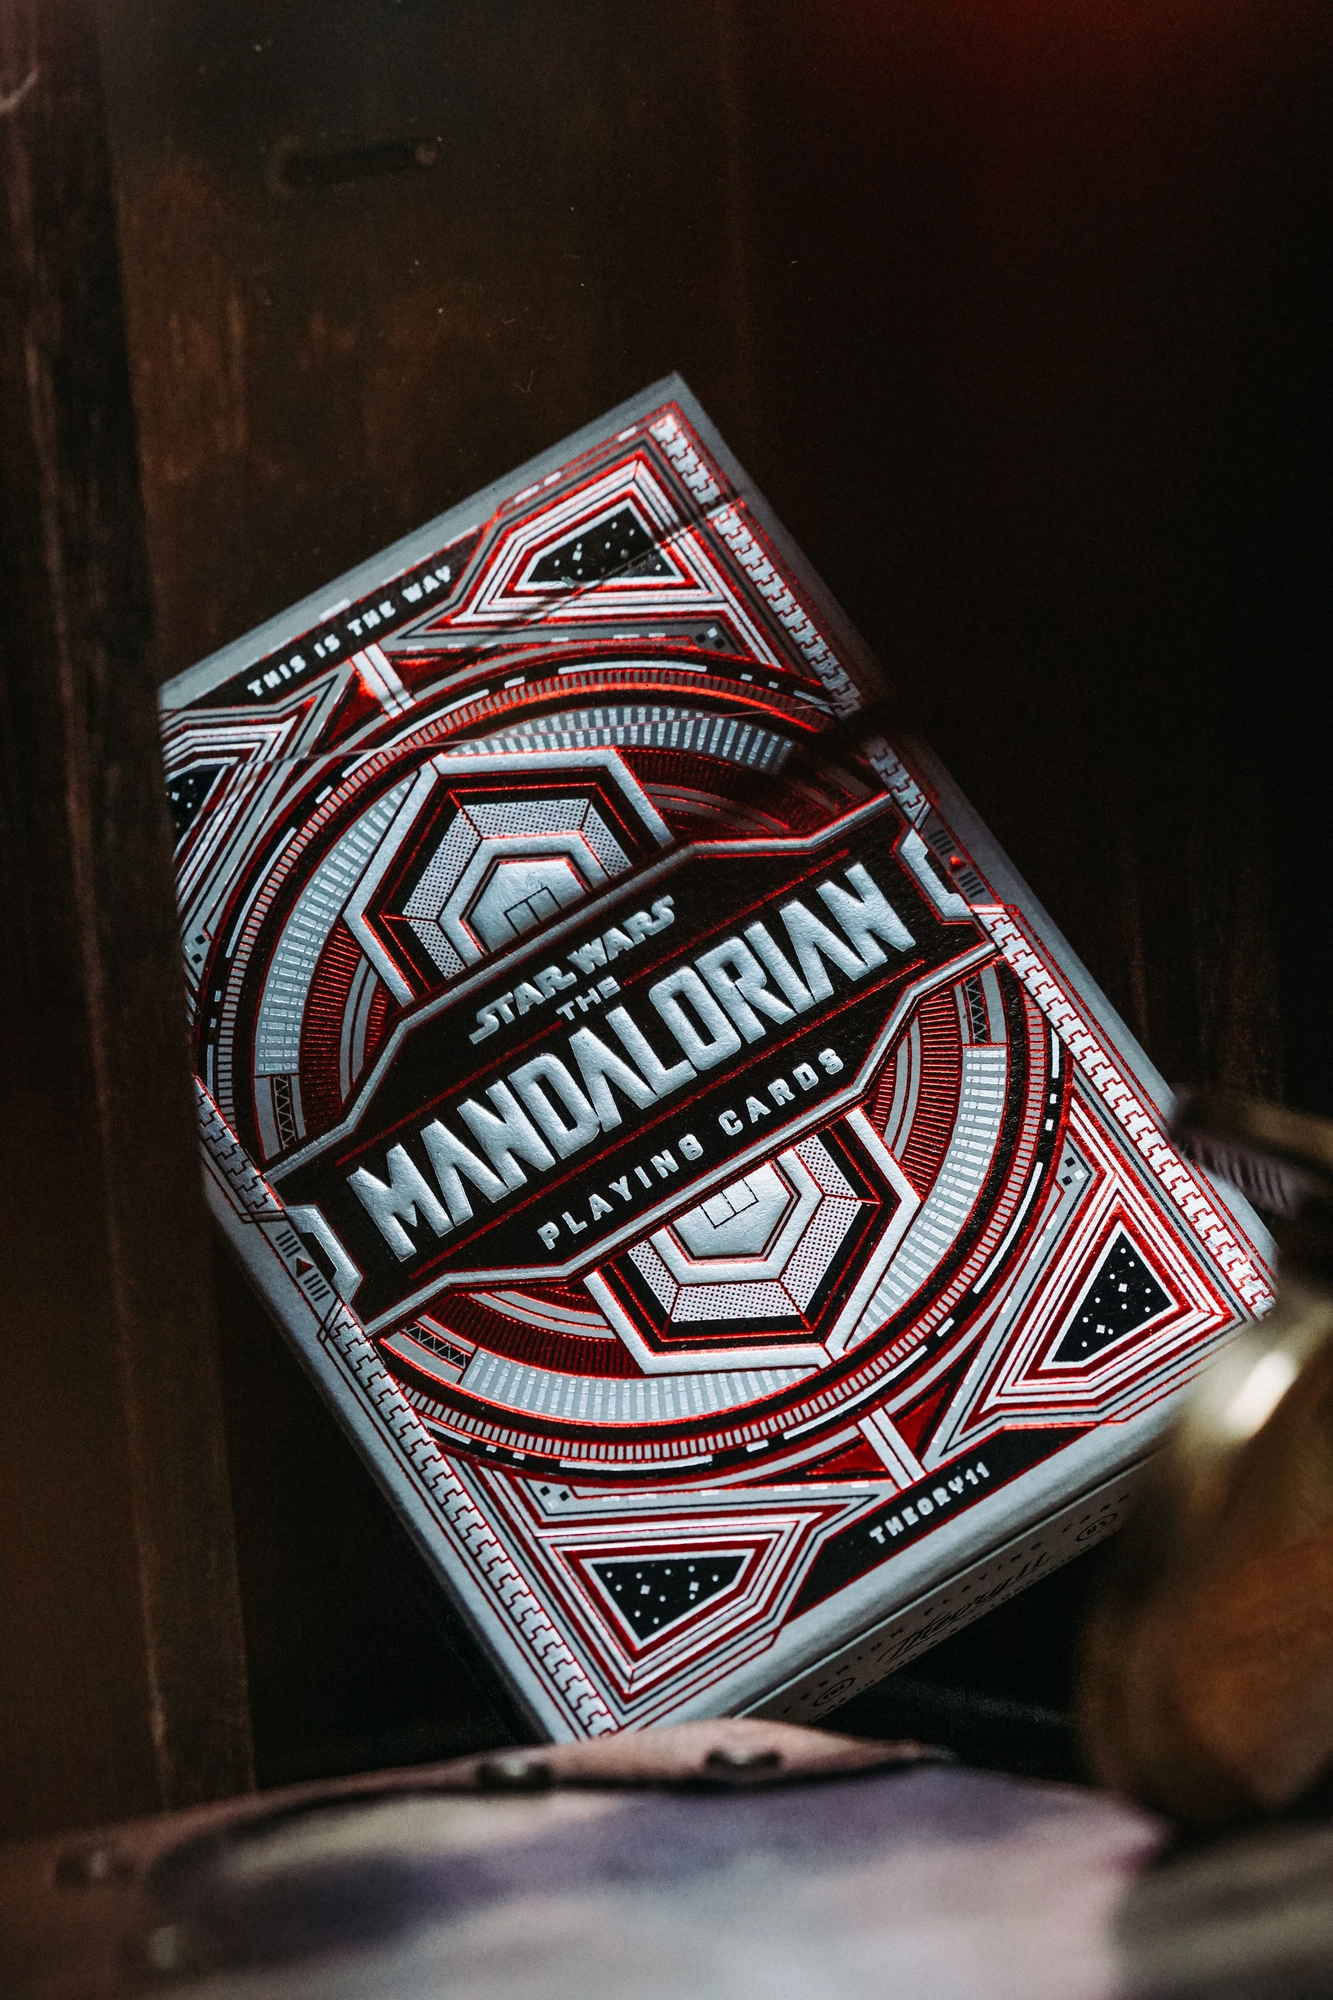 Theory 11 Playing Cards: The Mandalorian